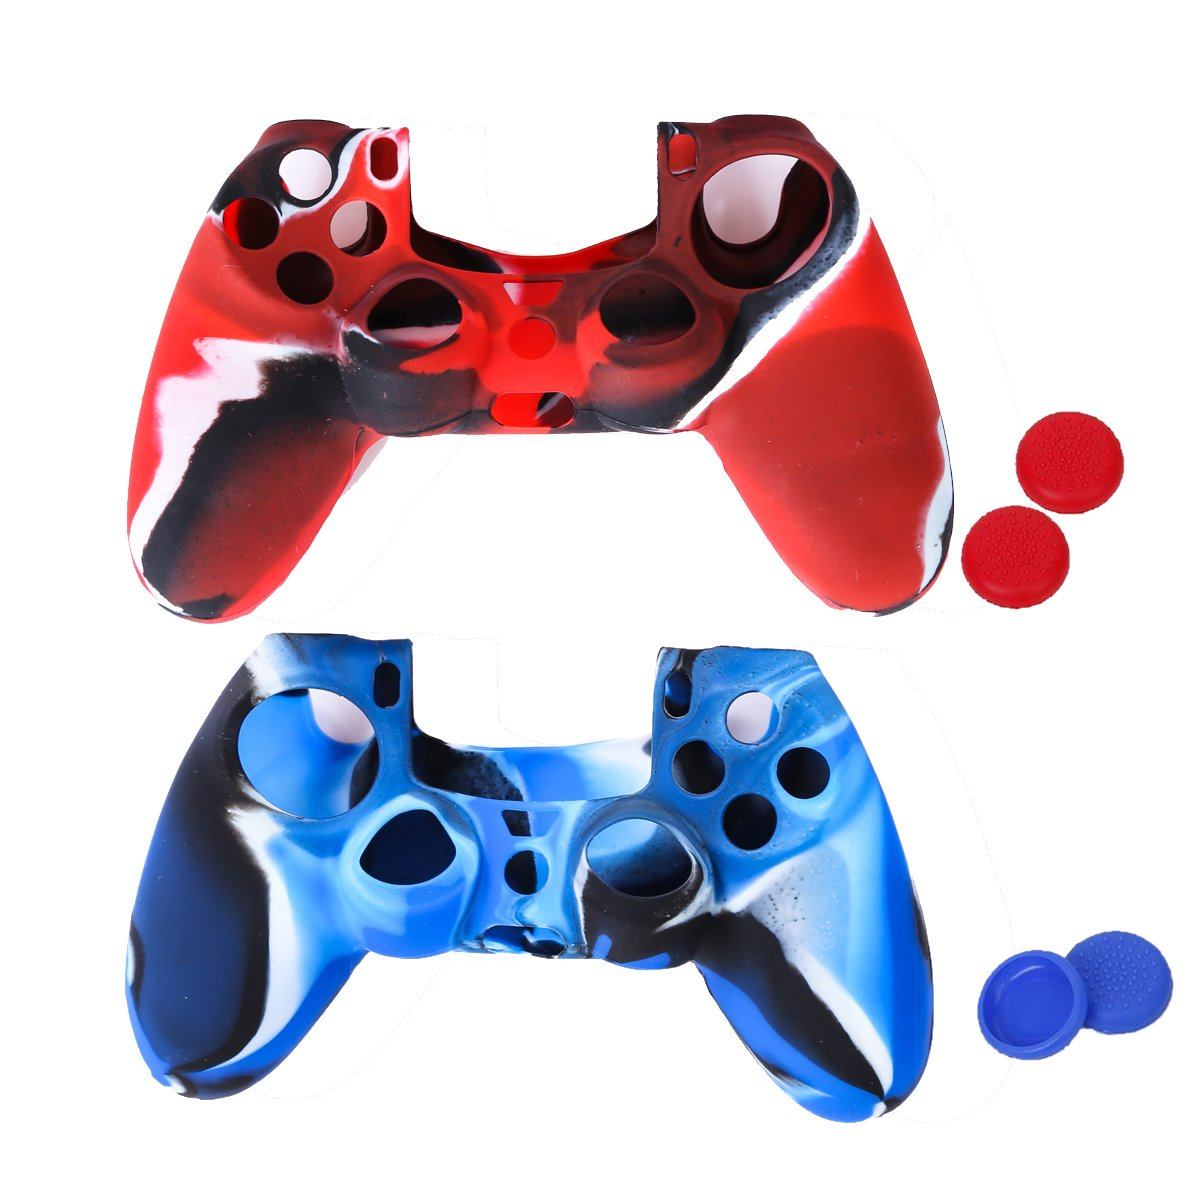 2 Flexible Silicone Protective Case Skin Cover for Sony PlayStation 4 PS4 Controllers with 4 Joystick Thumb stick Caps